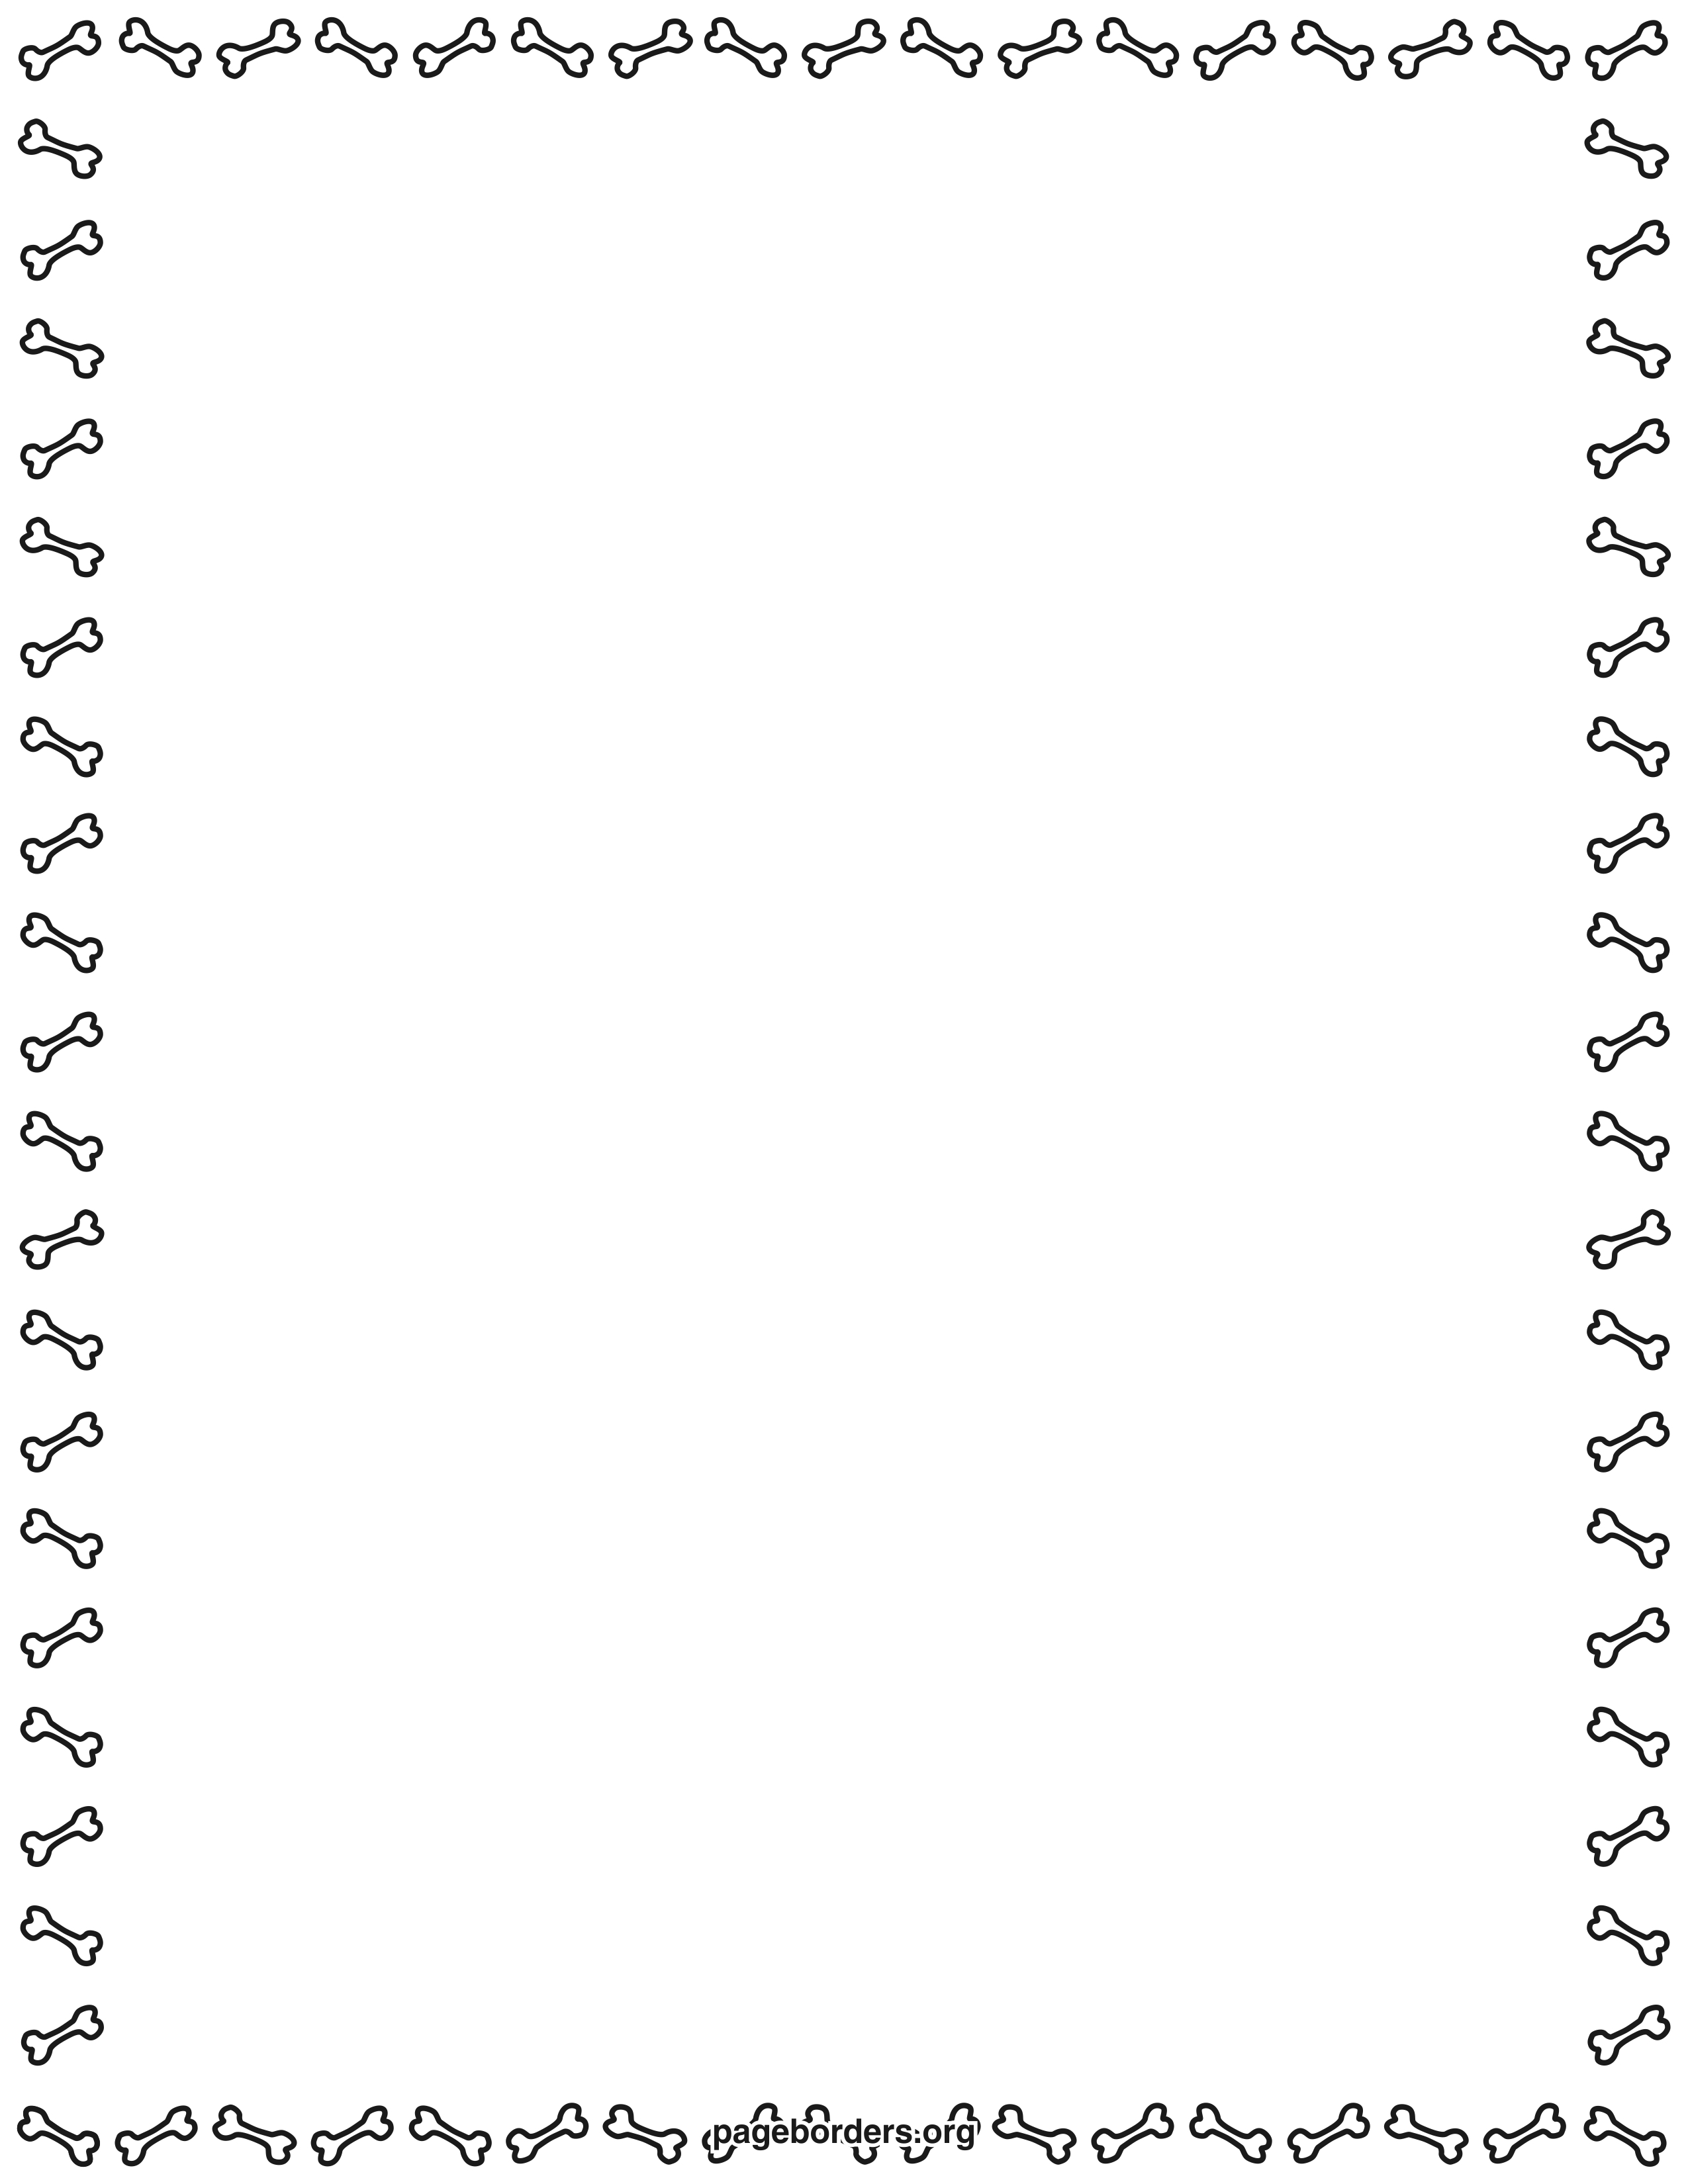 freeuse stock Free exercise cliparts download. Workout clipart border